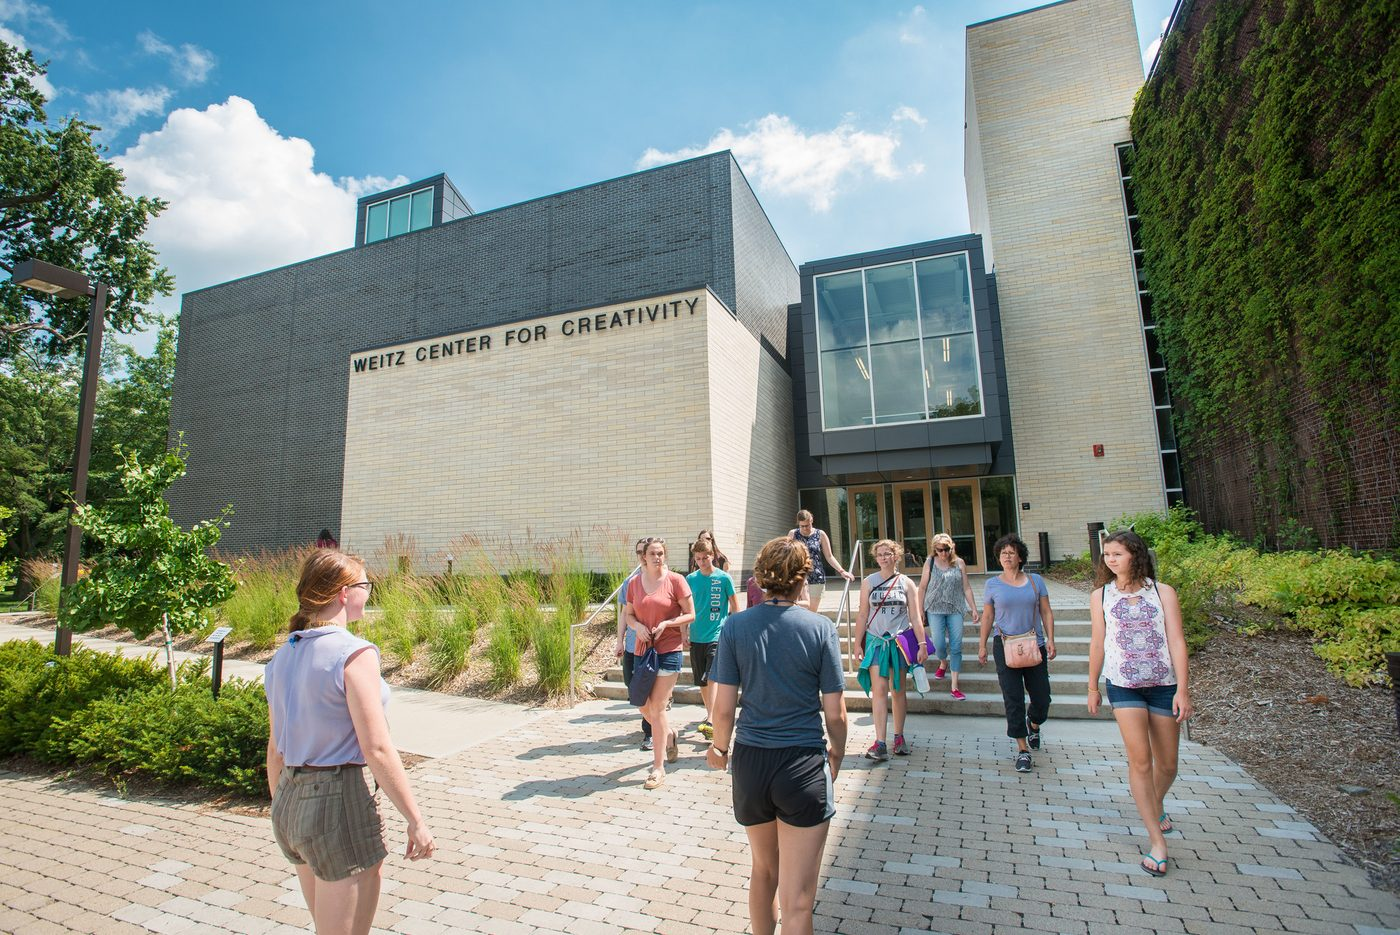 A group of people outside the Weitz Center for Creativity